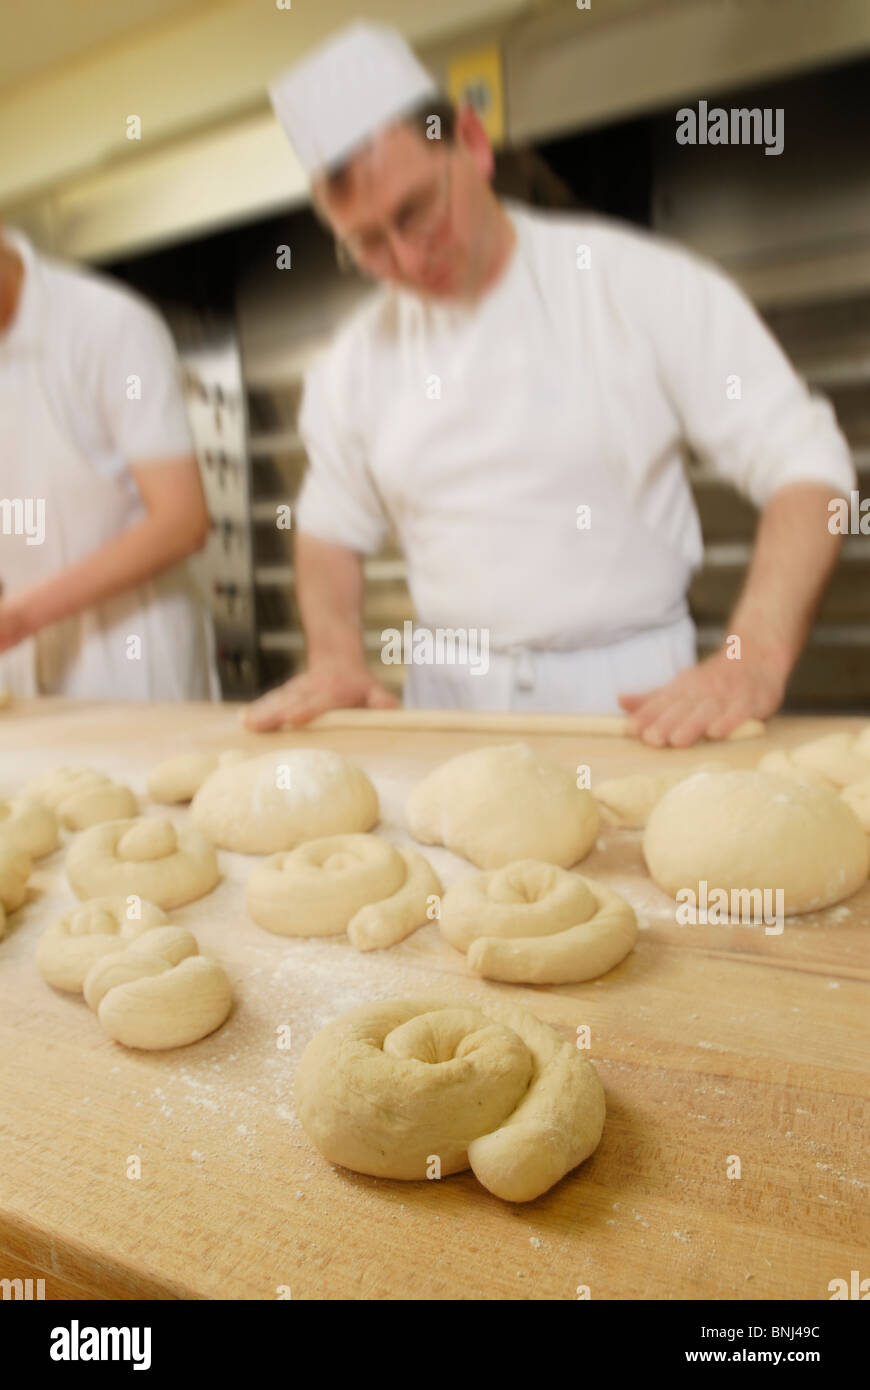 baker, blurred,  forming cakes out of pastry - Stock Image